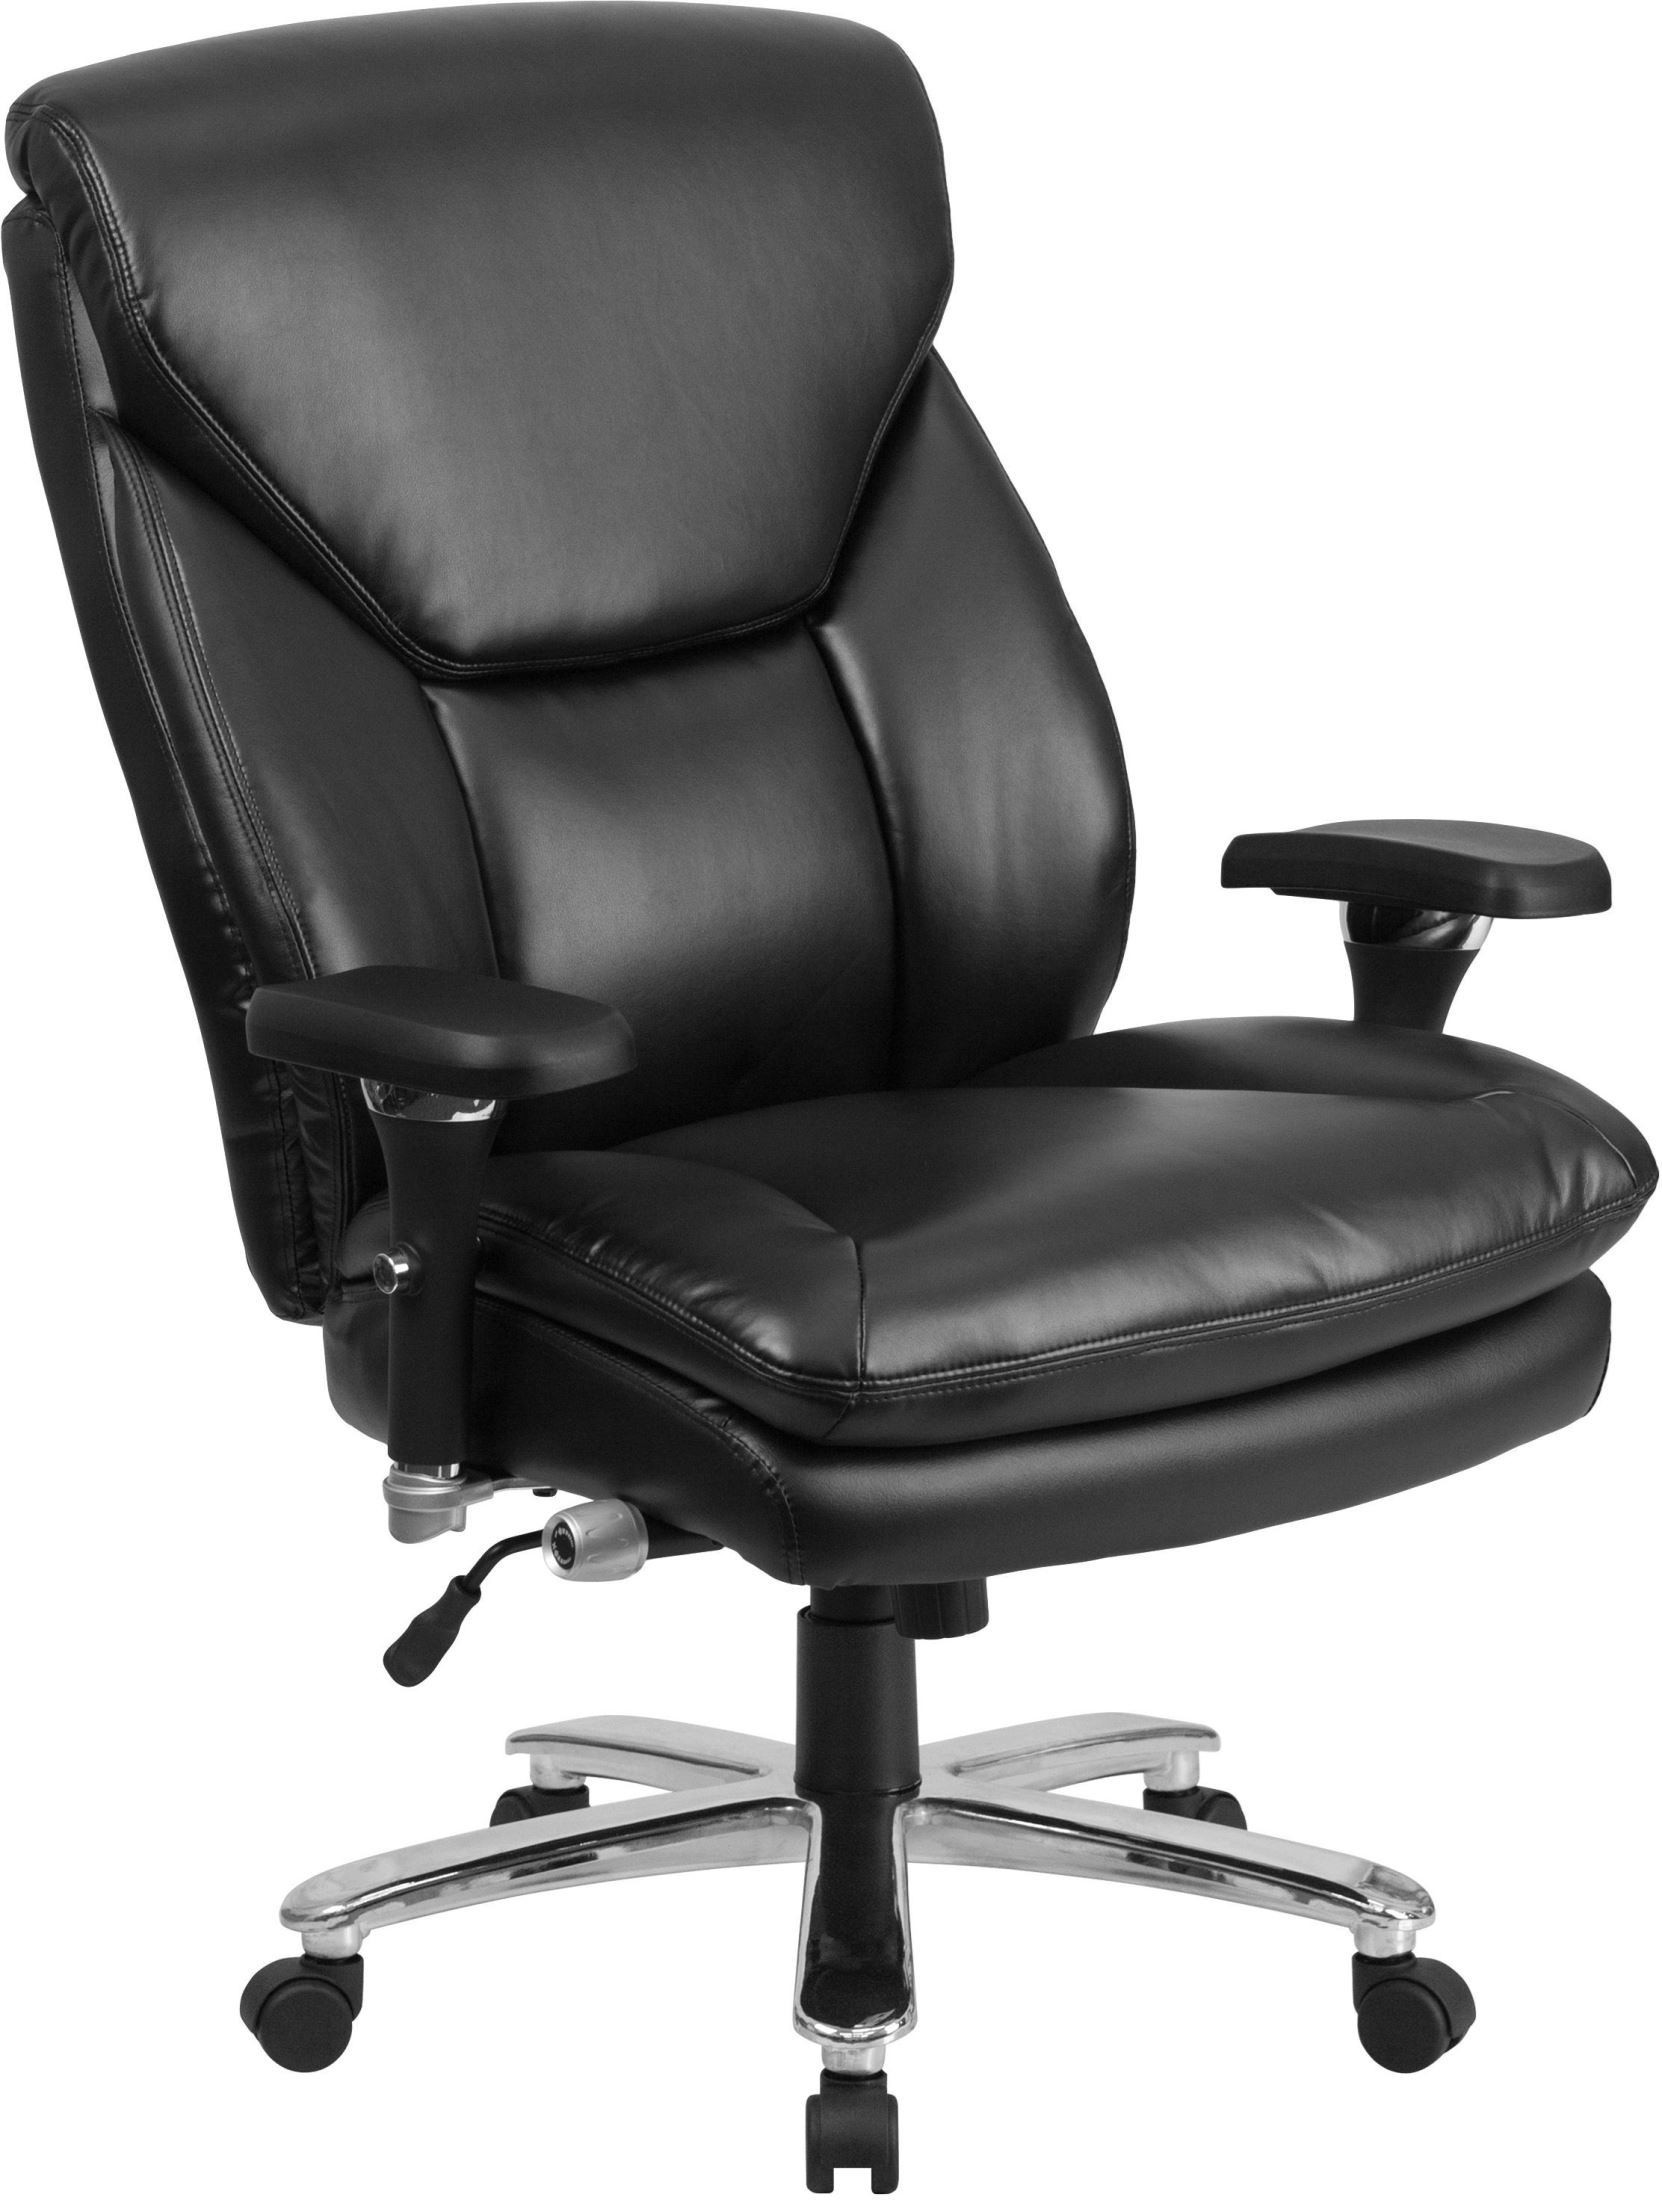 tall swivel chair zero gravity lawn chairs canada hercules 24 7 big and black executive from